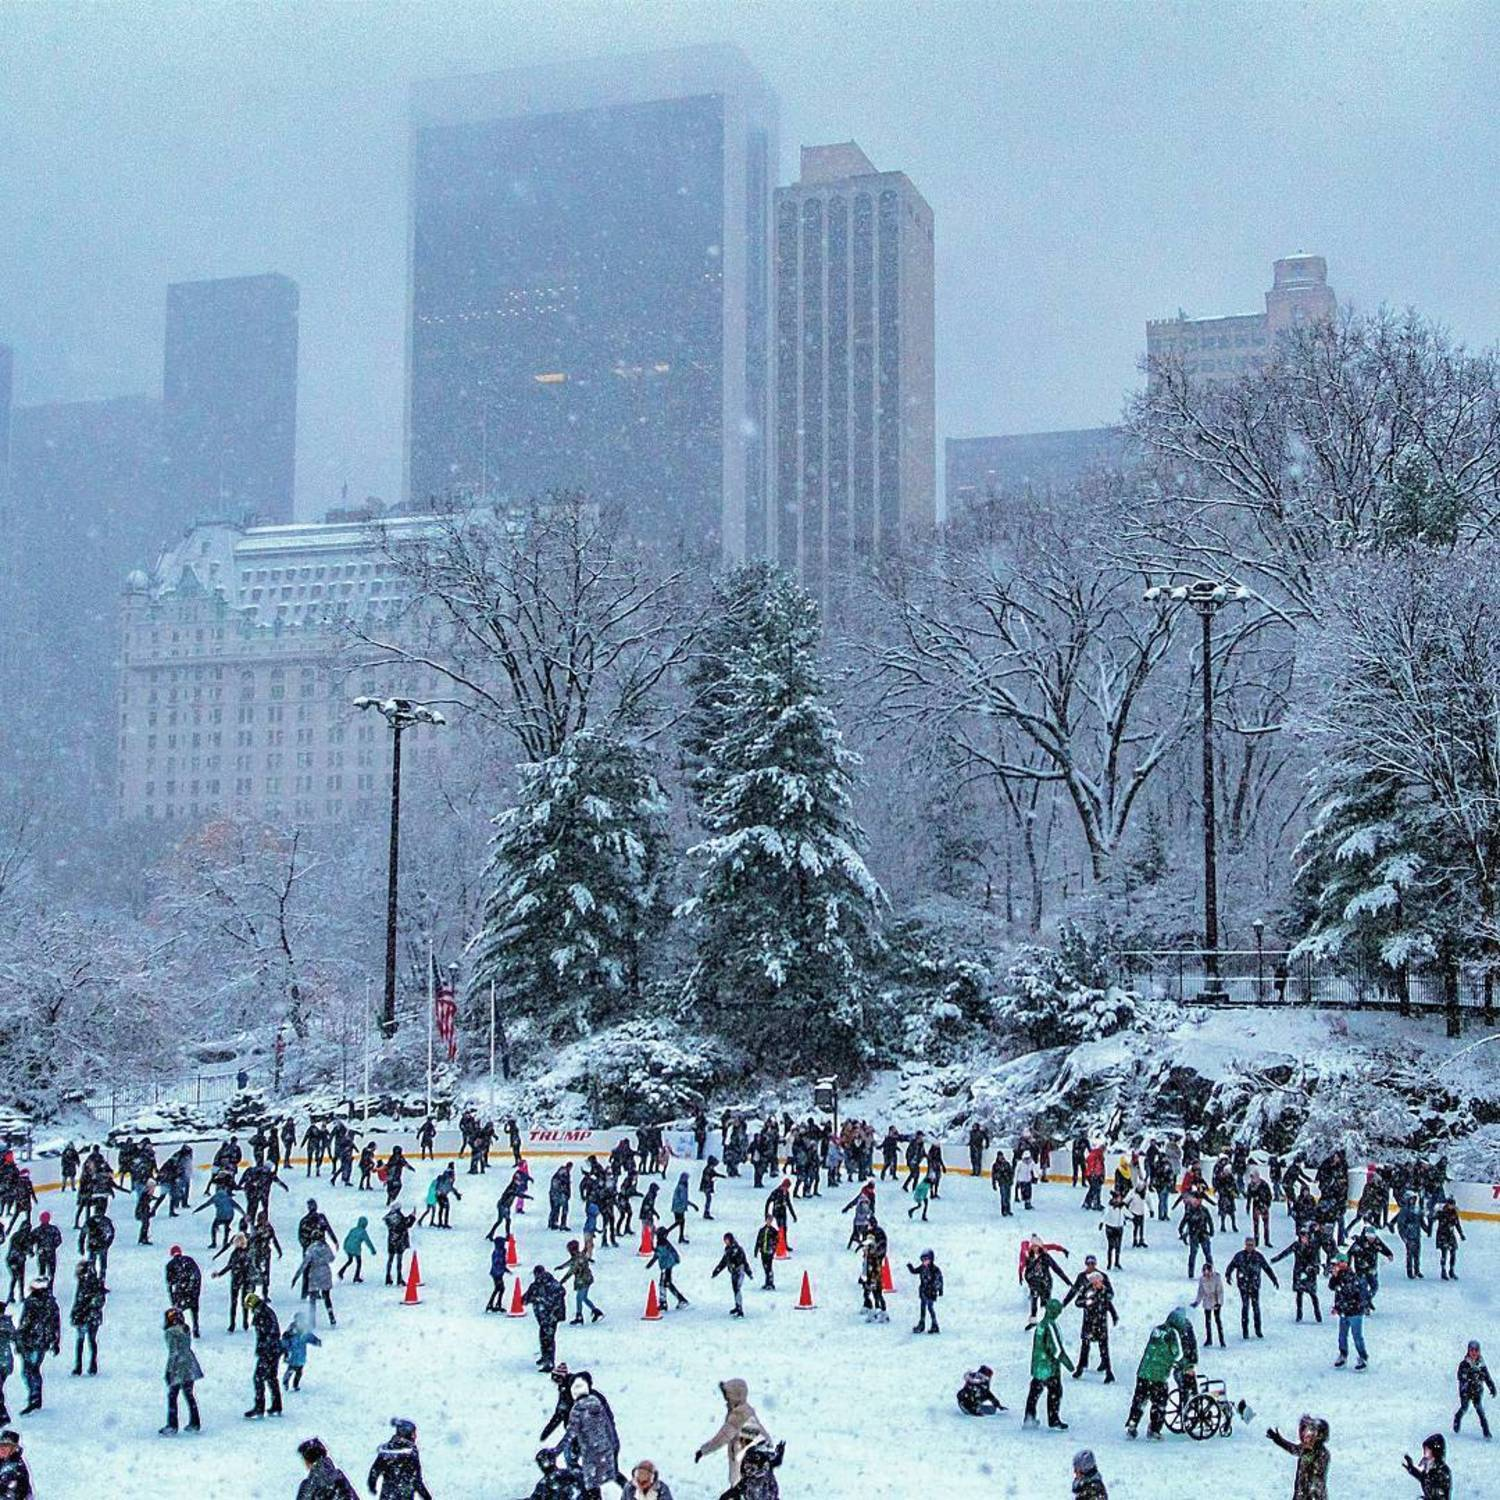 Wollman Rink, Central Park, New York, New York